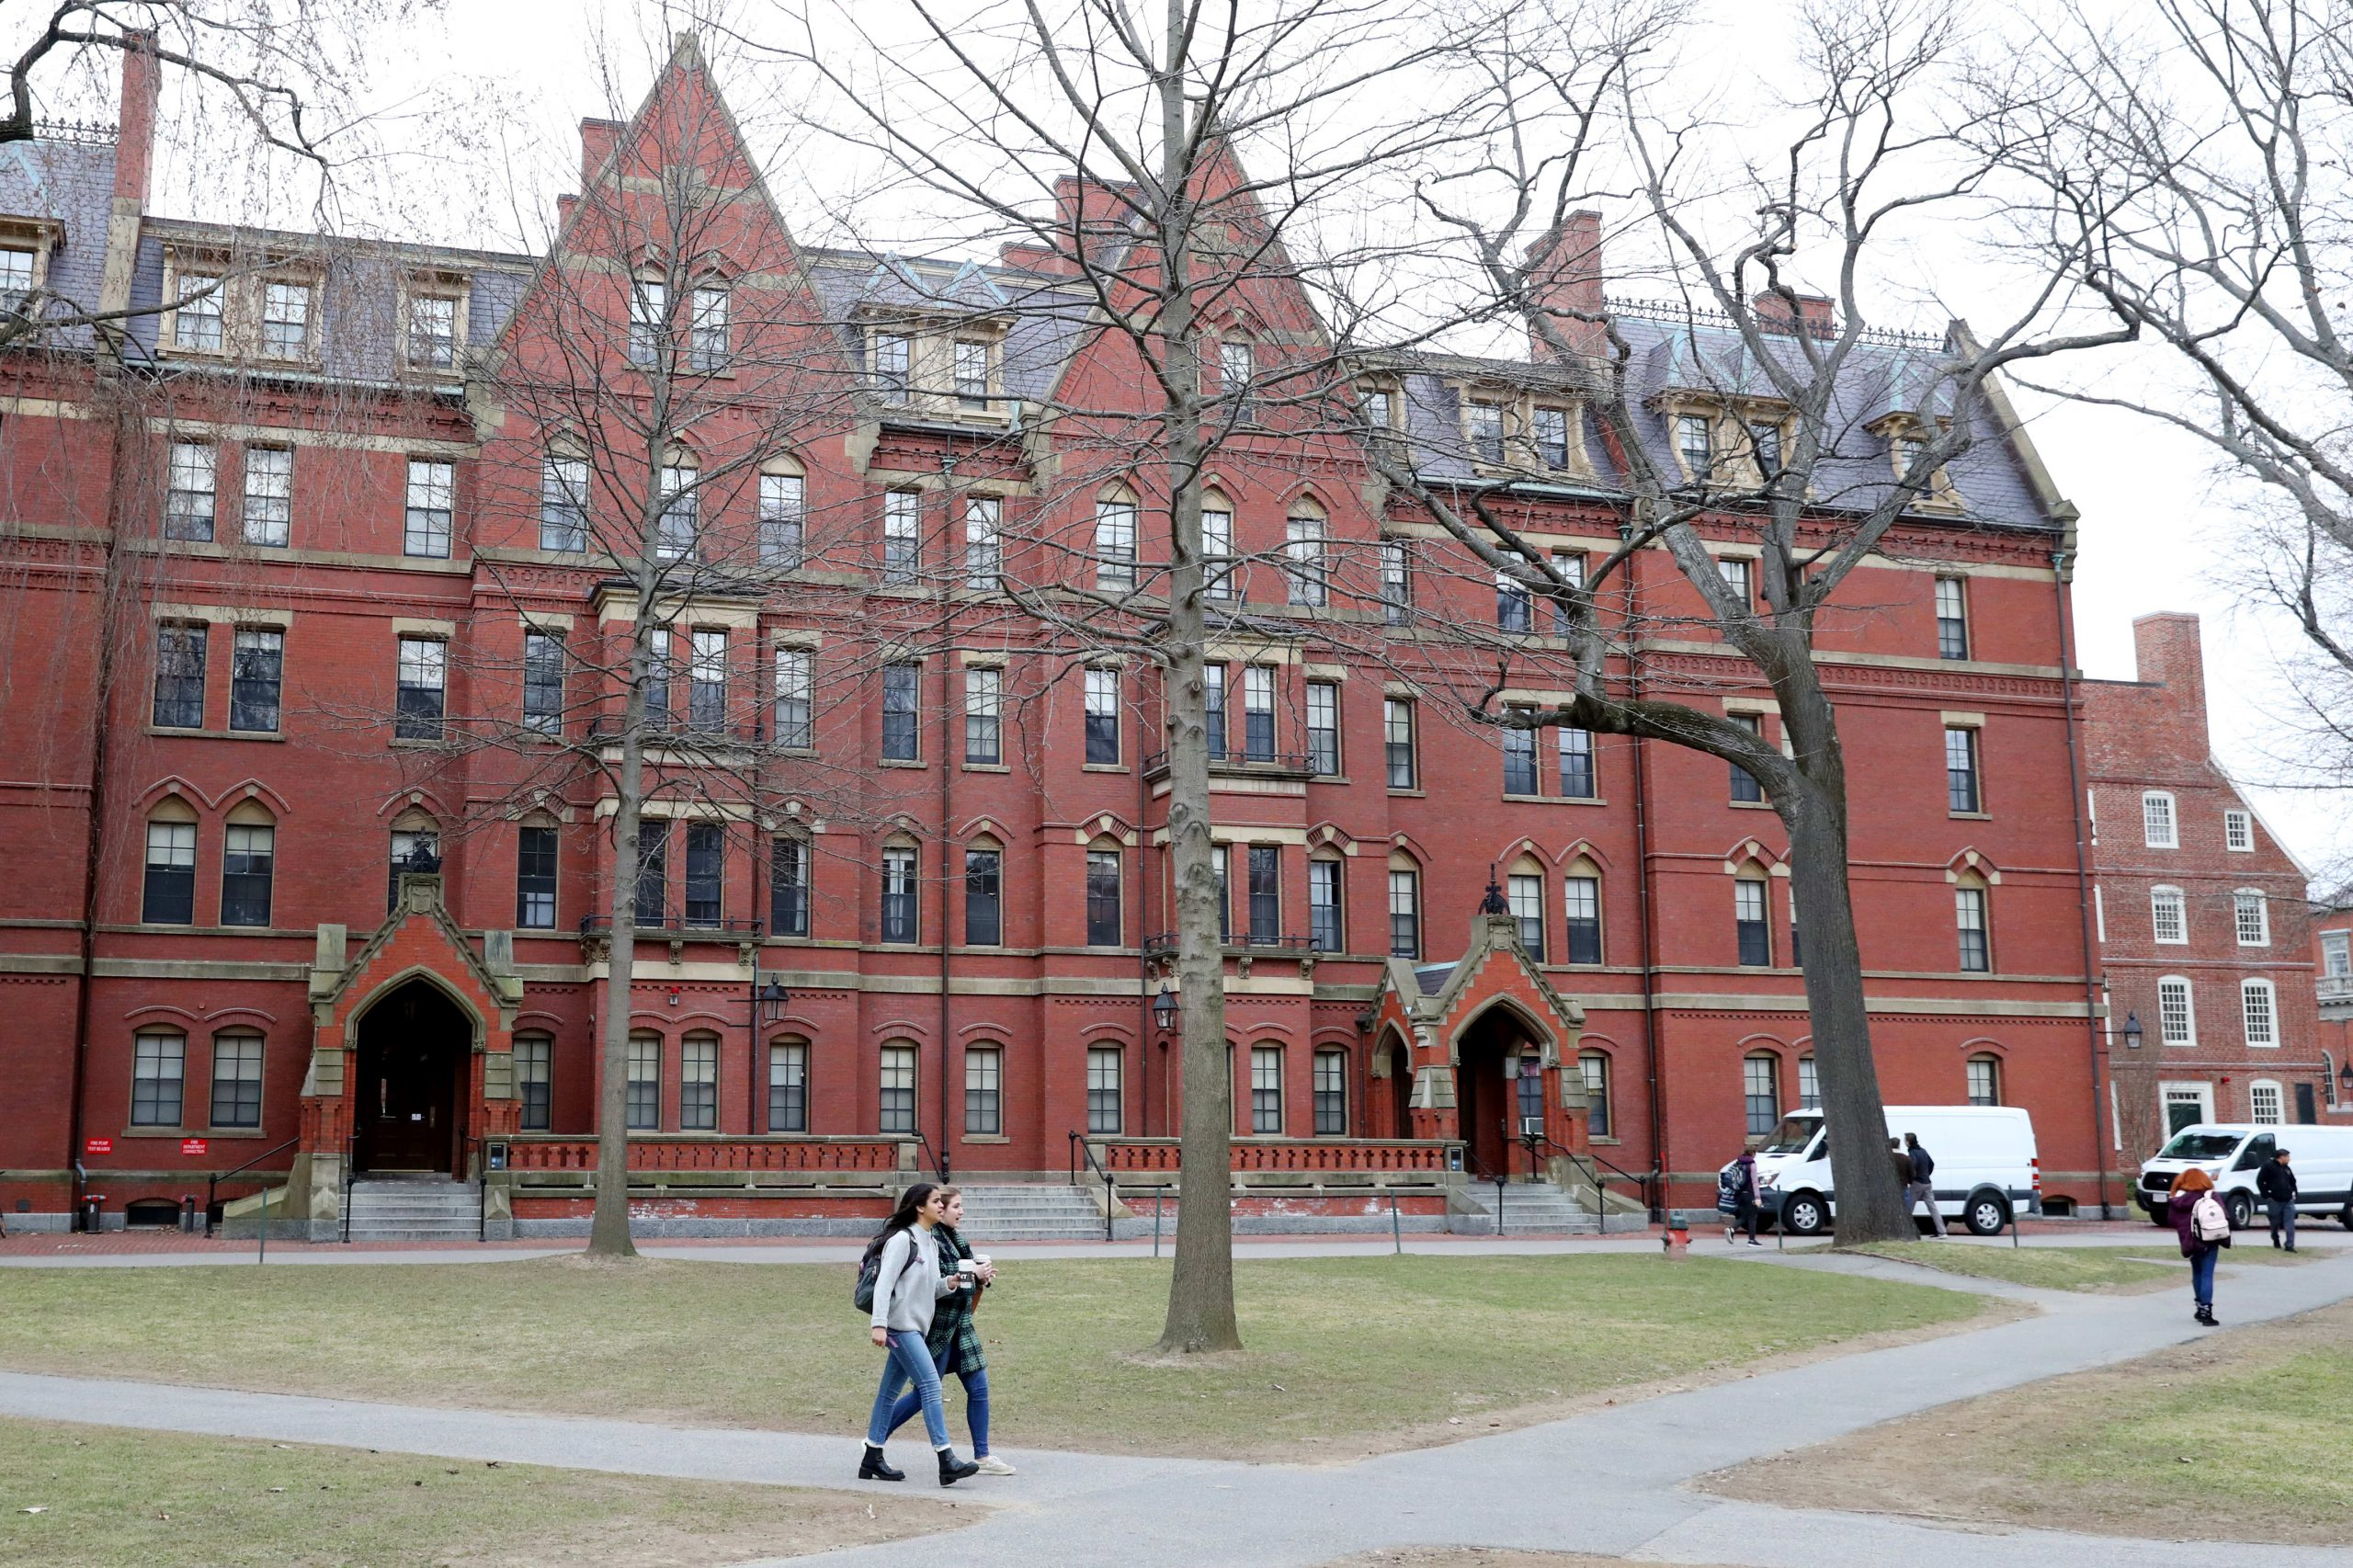 Harvard will allow some students on campus this fall so long as they take coronavirus tests every three days